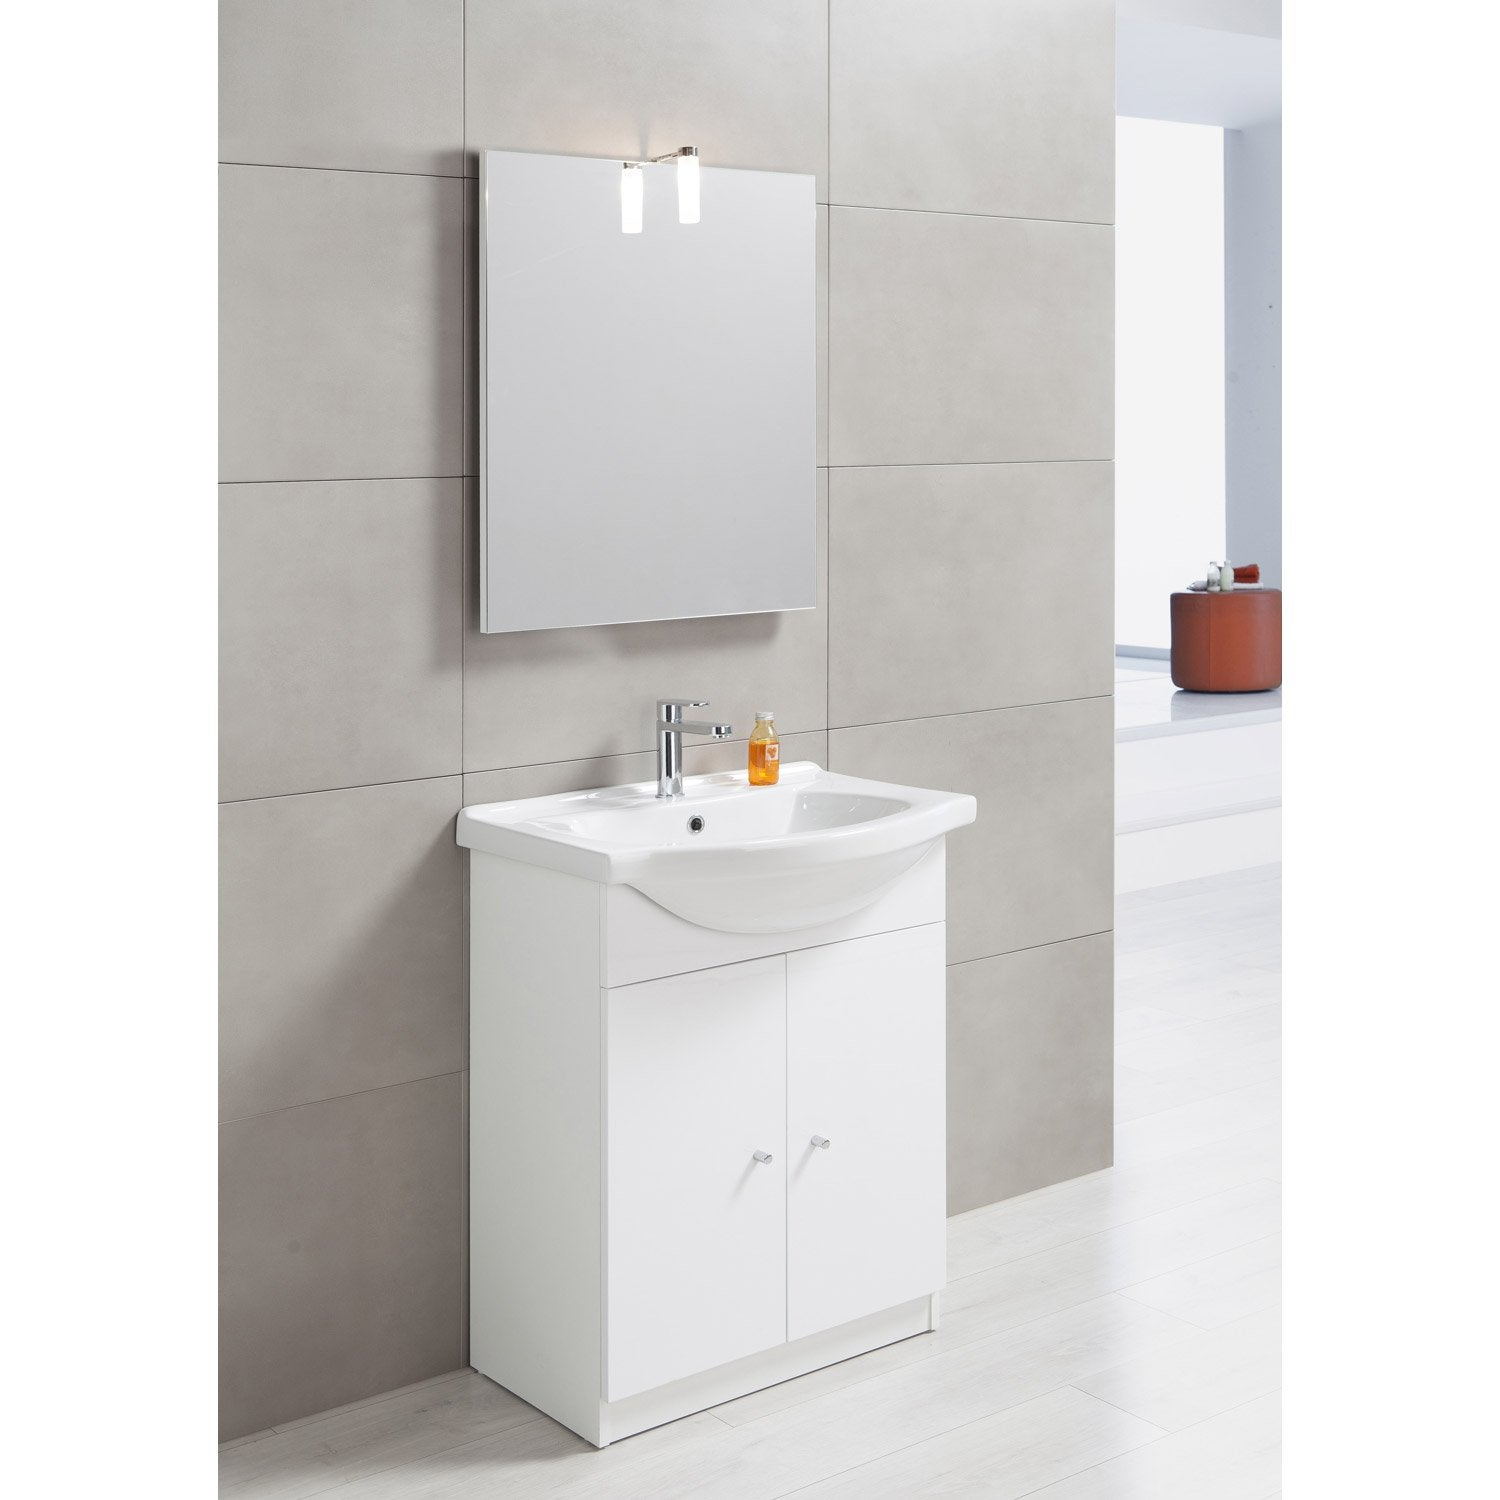 Meuble vasque 65 cm blanc bianca leroy merlin for Glace de salle de bain design